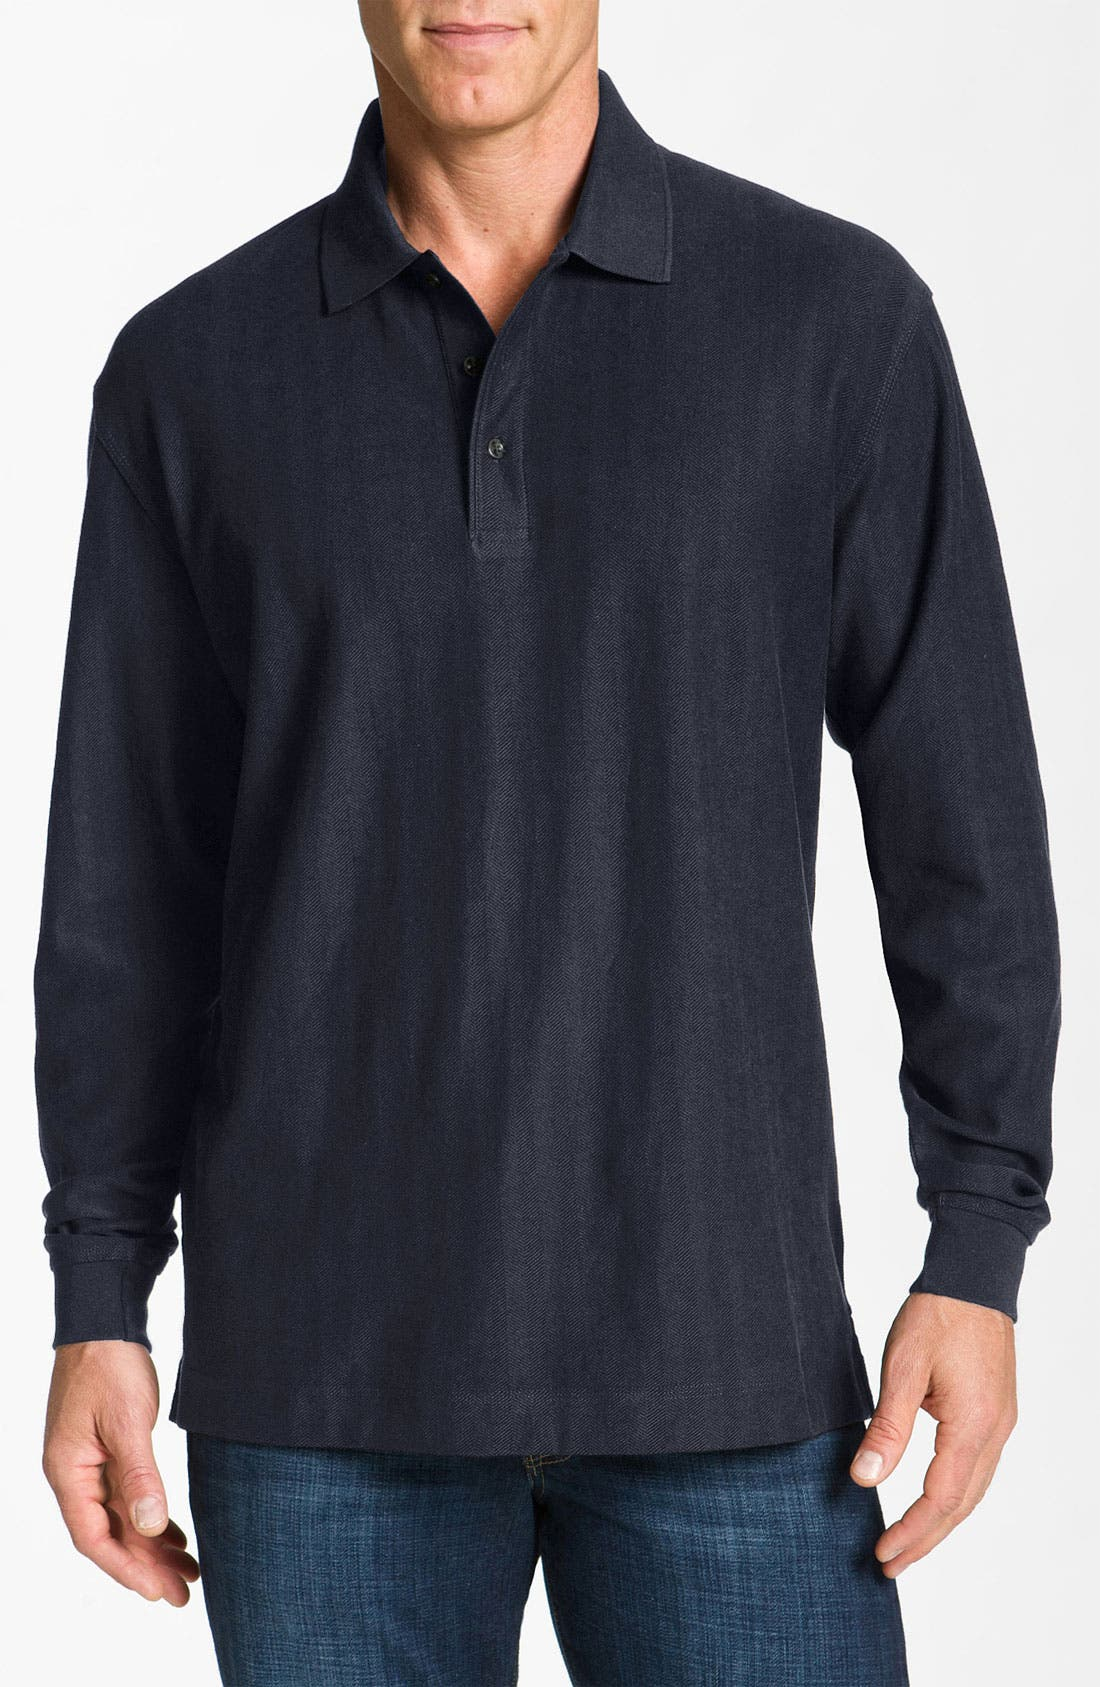 Alternate Image 1 Selected - Cutter & Buck 'Atwell' Polo (Big & Tall)